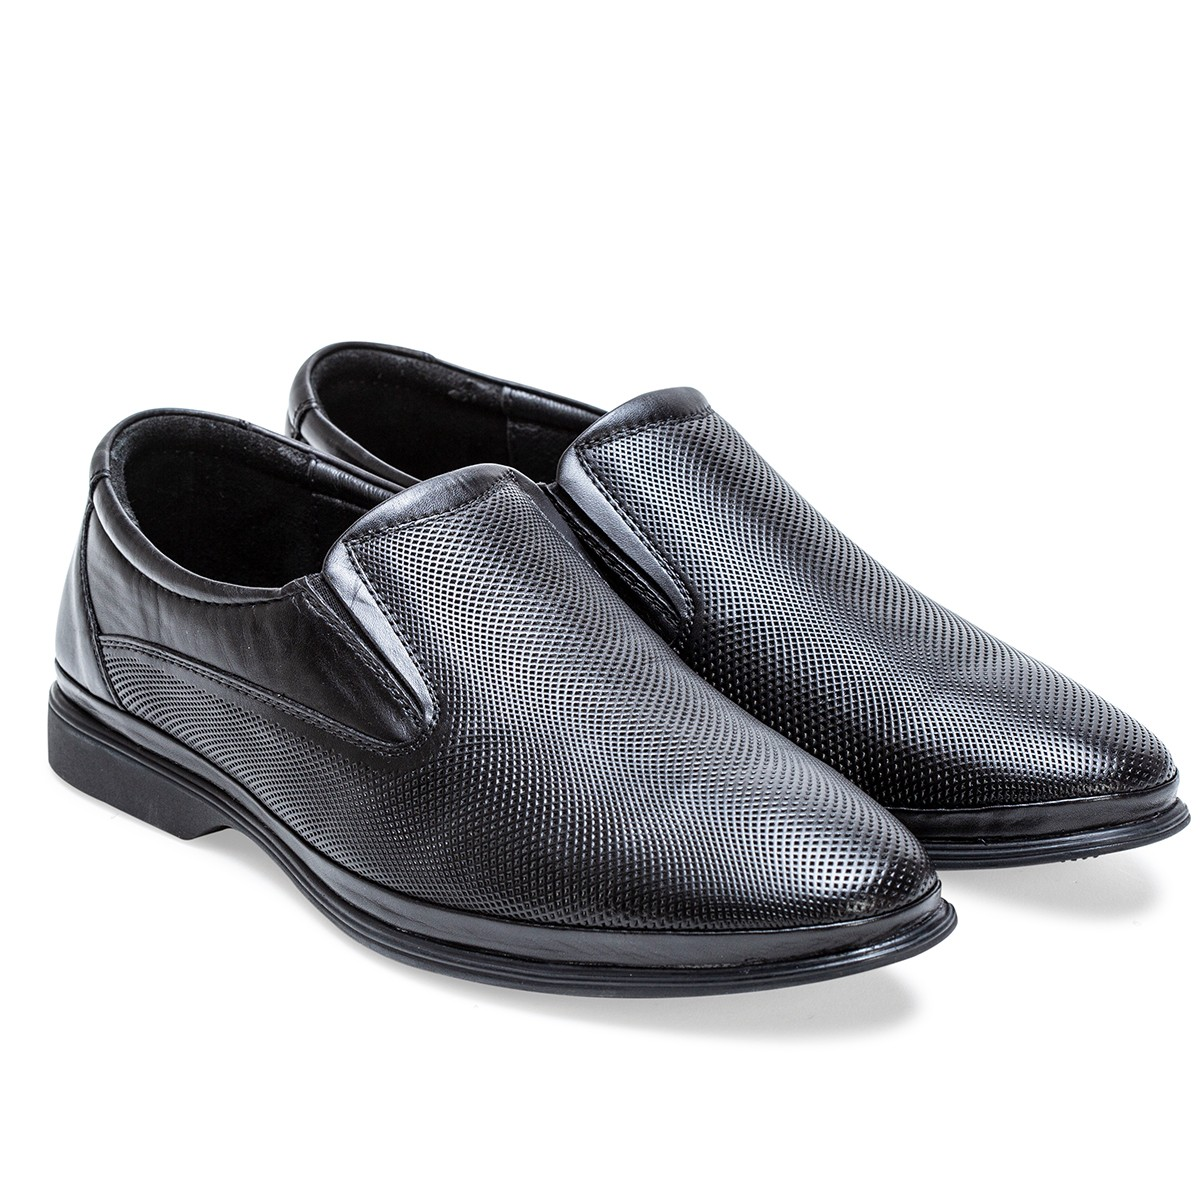 Buy Von Wellx Germany Comfort Mondaine Casual Black Shoes Online in Dubai